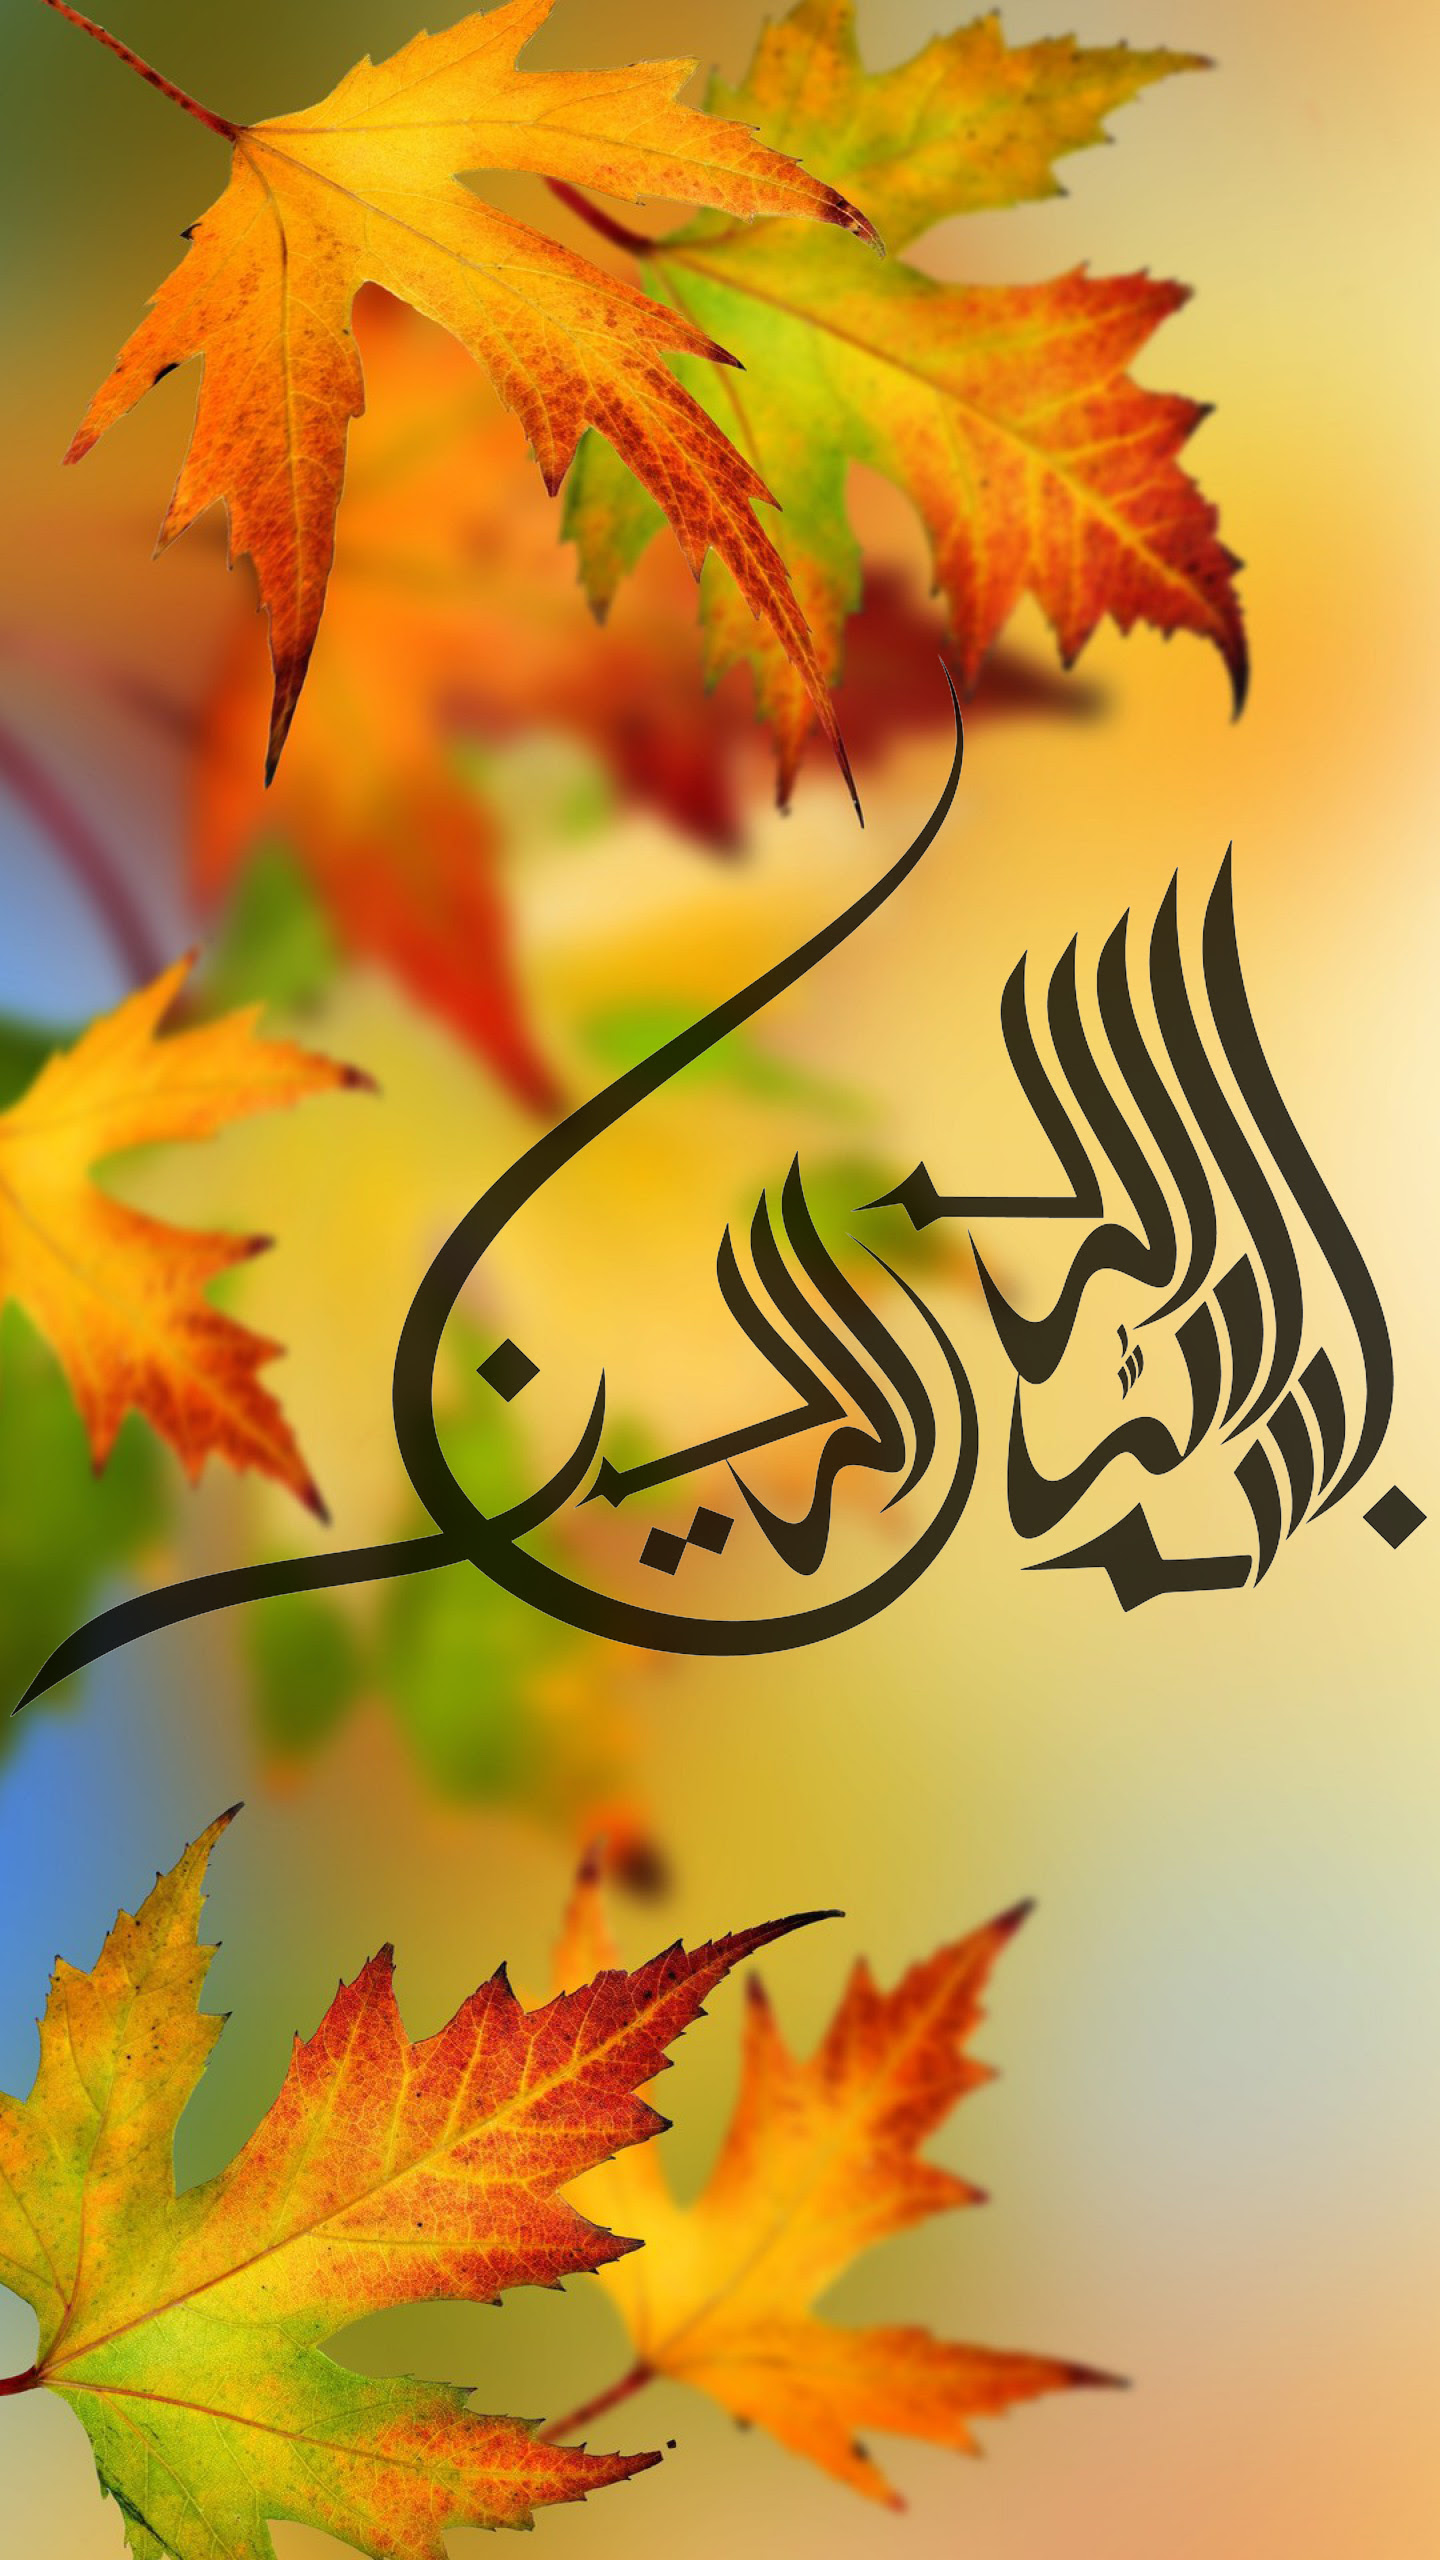 Best Islamic Wallpaper for 5 inch Mobile Phone 2 of 7 - Bismillah in Autumn Background | HD ...